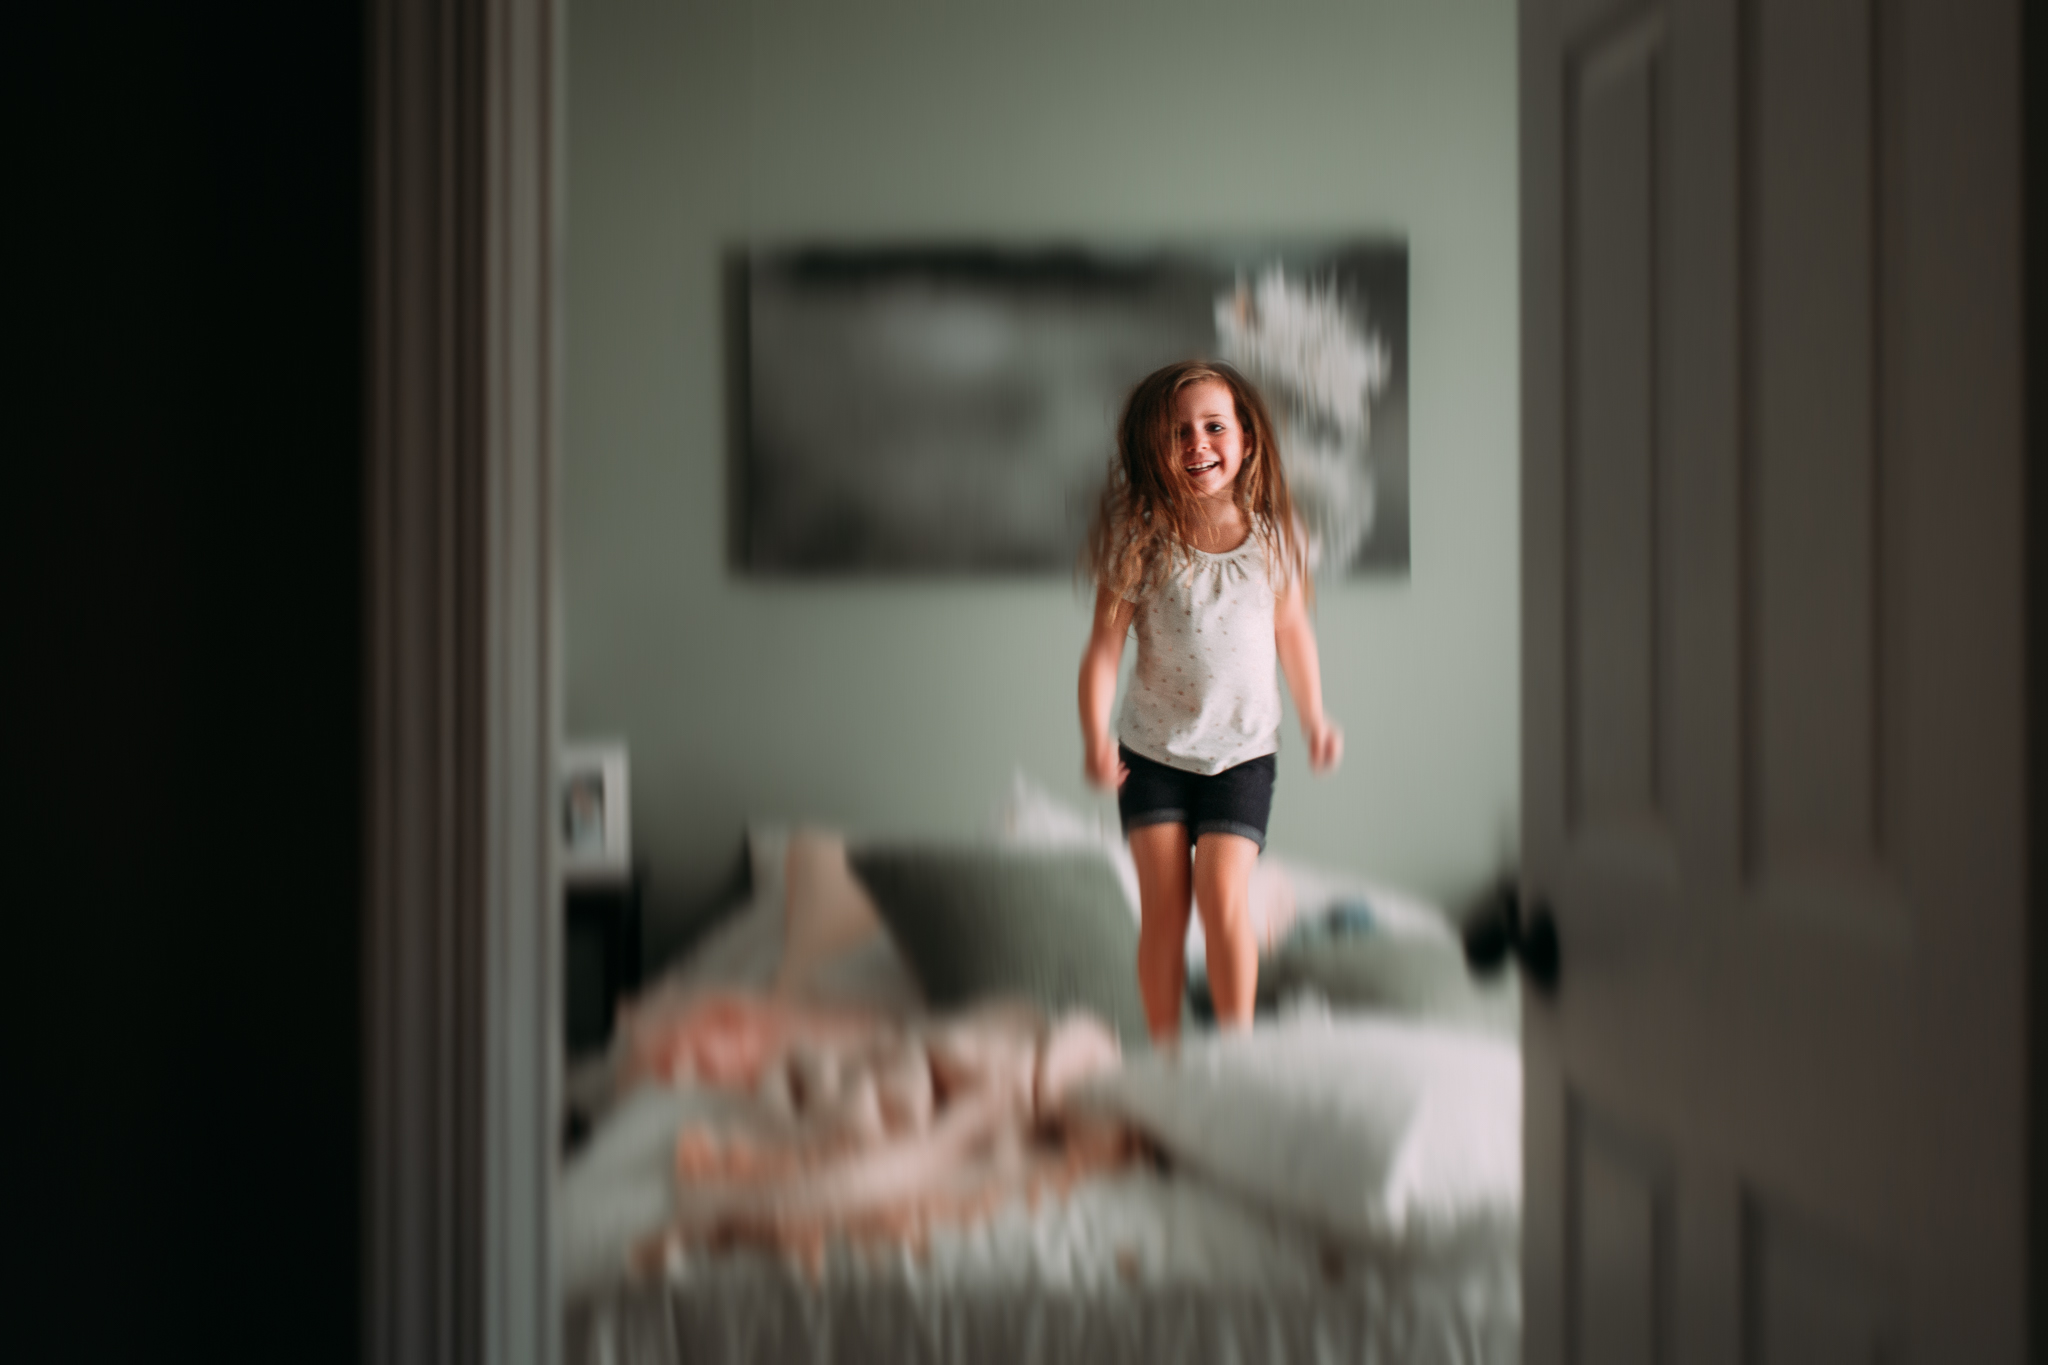 girl jumping on bed motion panning movement summer Ashburn Loudoun Northern Virginia family lifestyle documentary childhood Marti Austin Photography